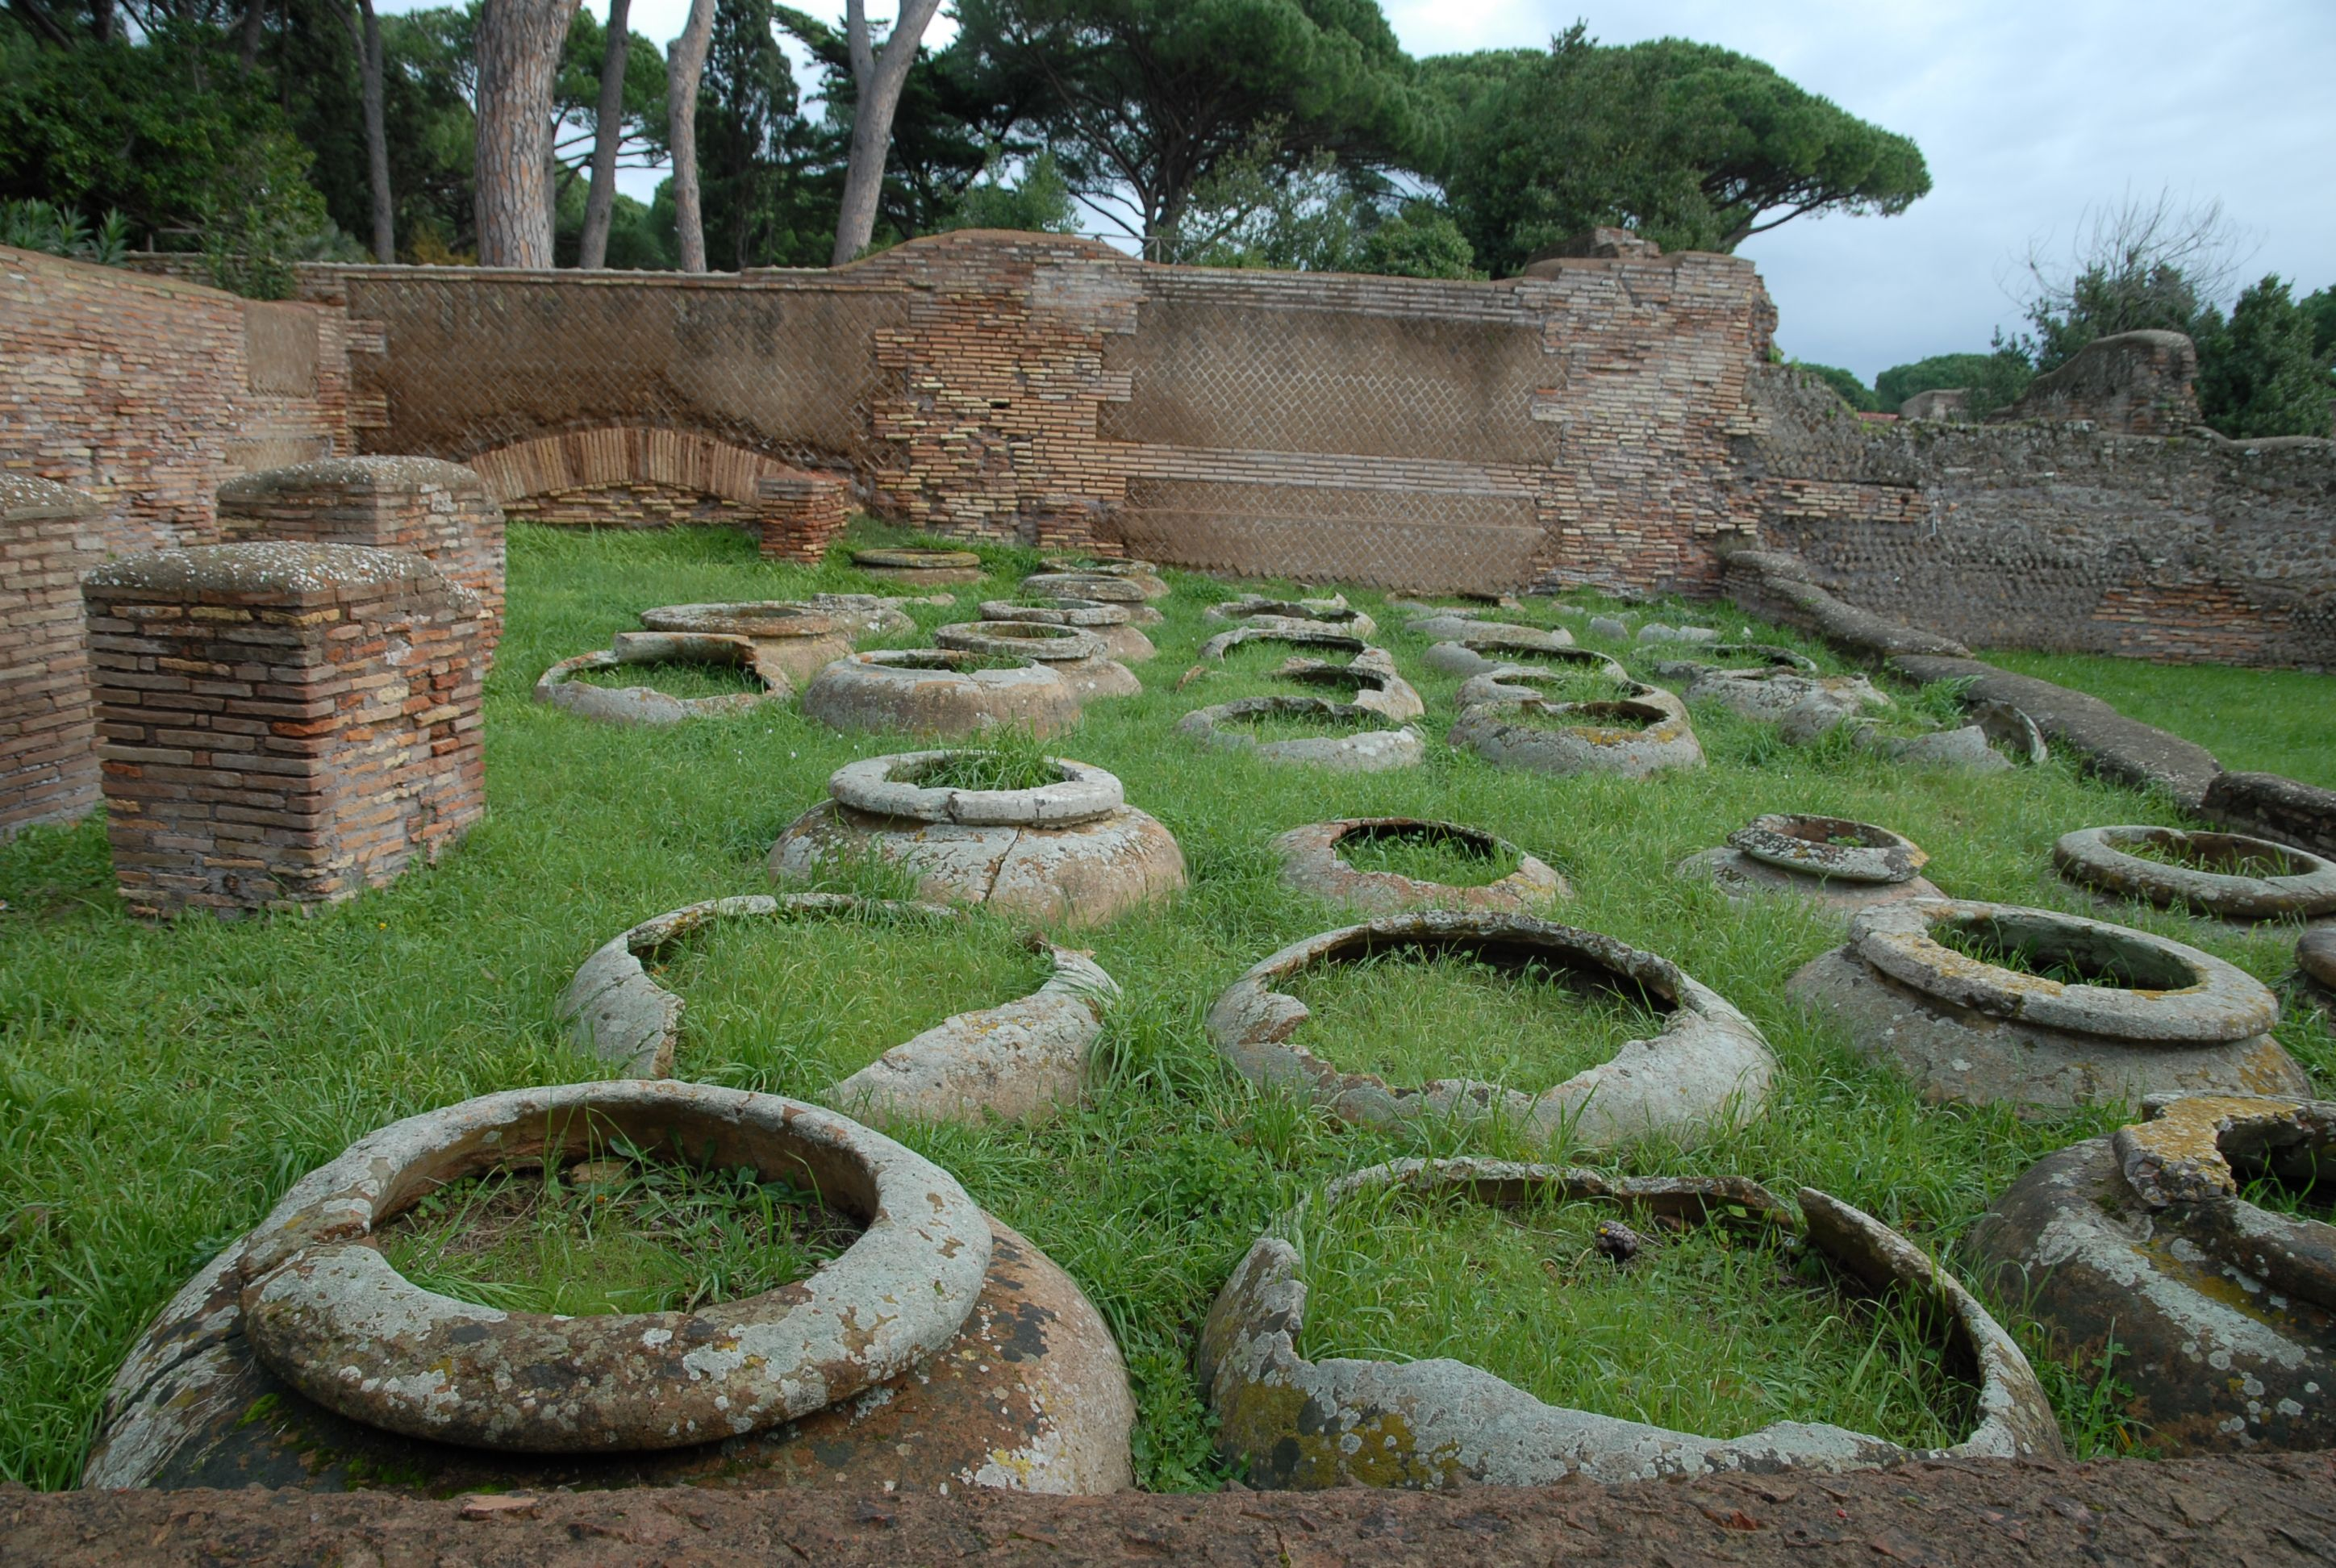 wine flasks in Ostia antica - Rome's ancient port city